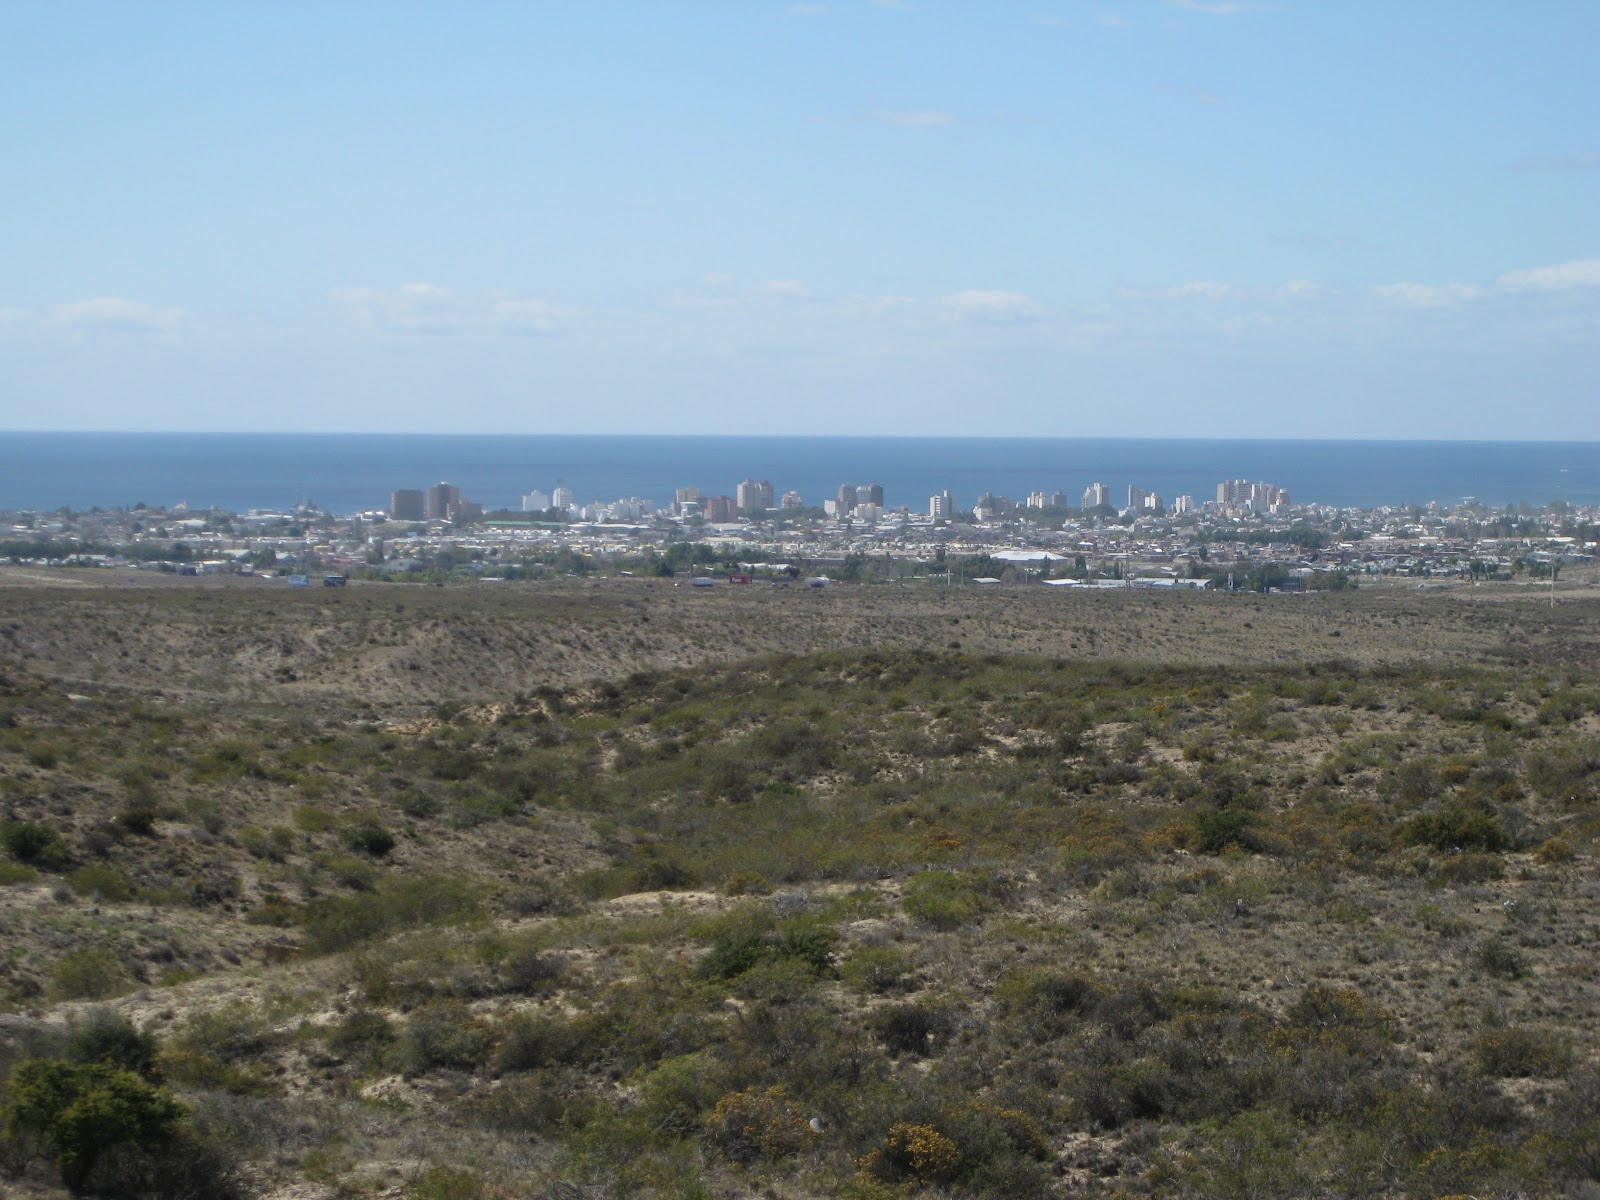 Looking down towards Puerto Madryn